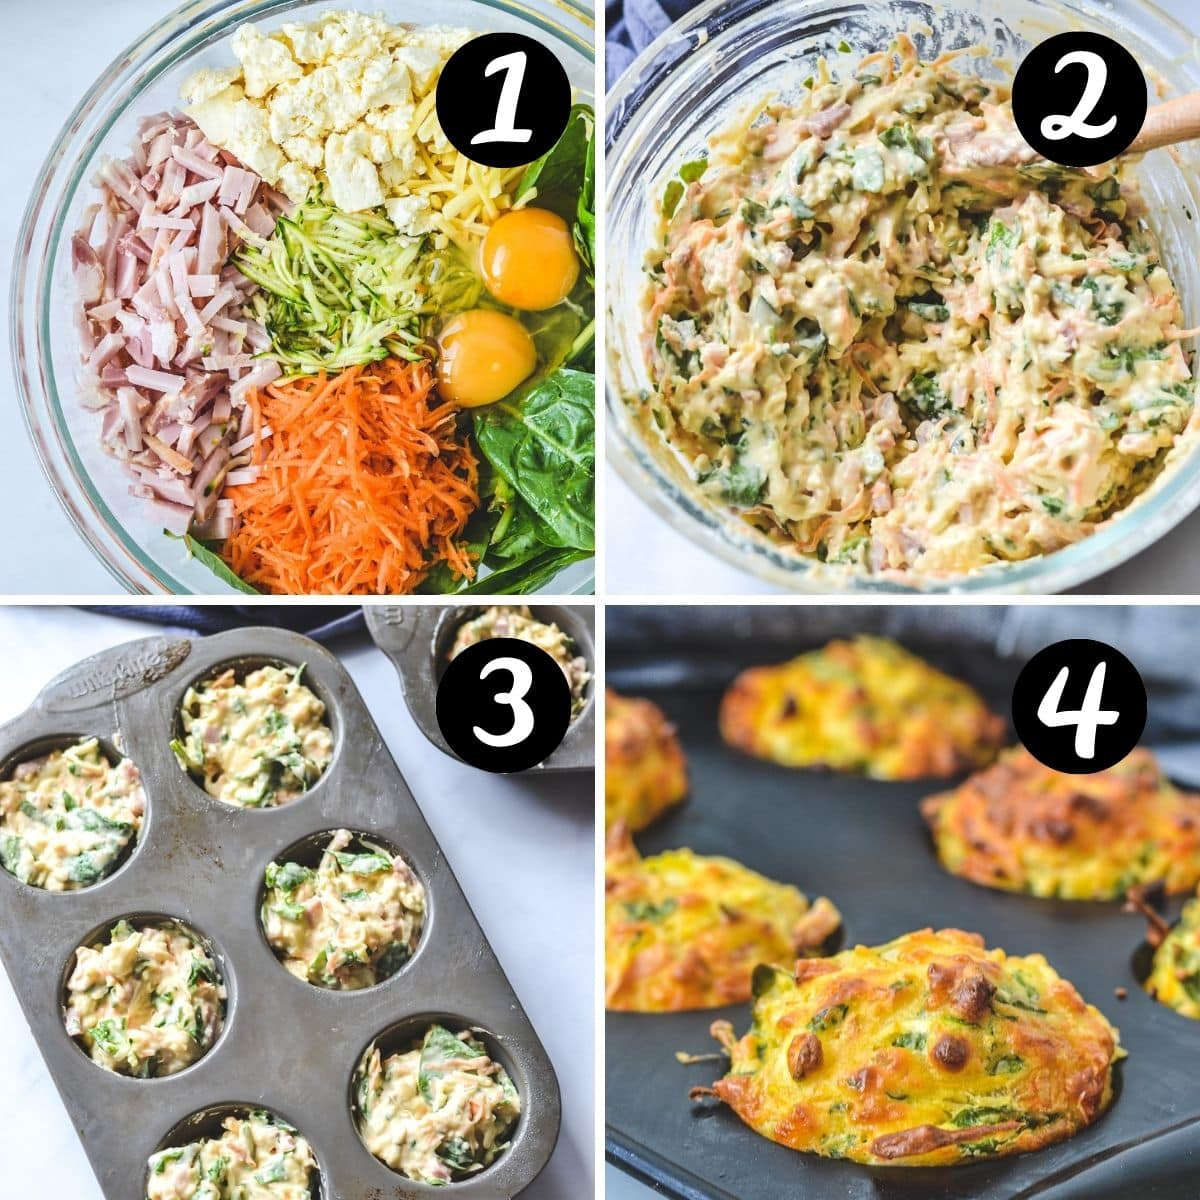 a collage of step by step photos showing vegetable muffins in a mixing bowl and being added to a muffin tray